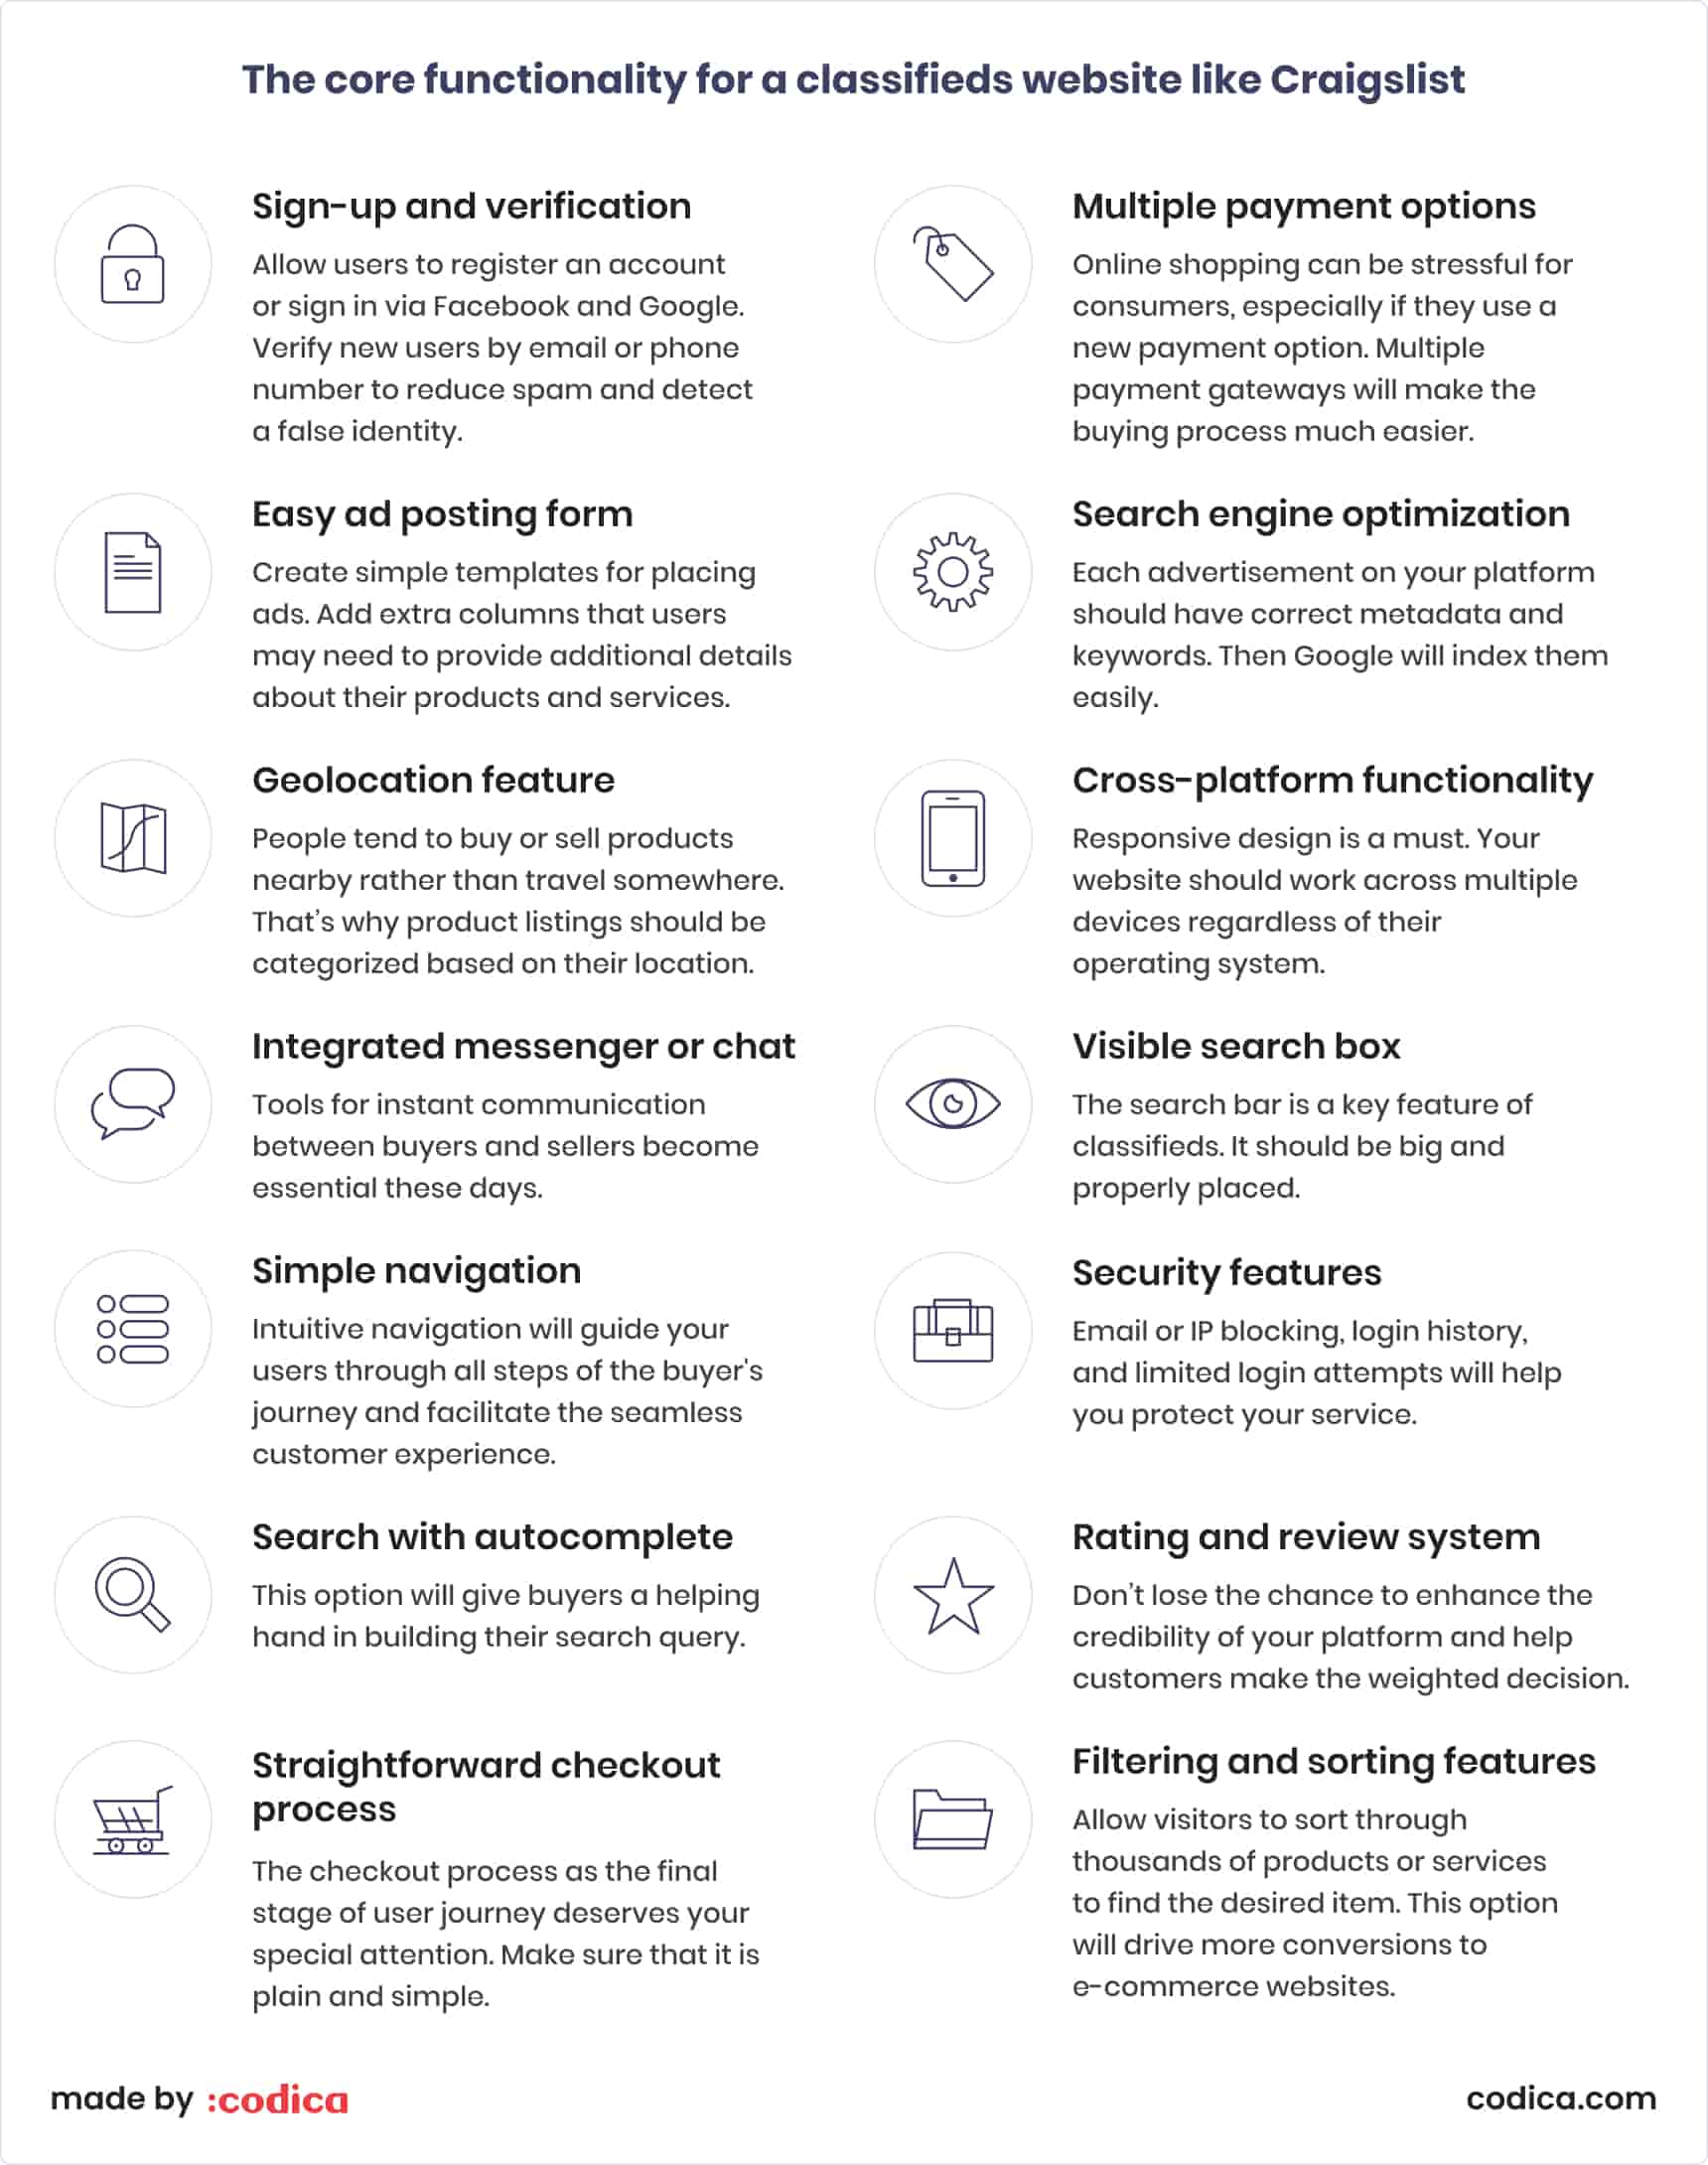 The core functionality of a website like Craigslist | Codica